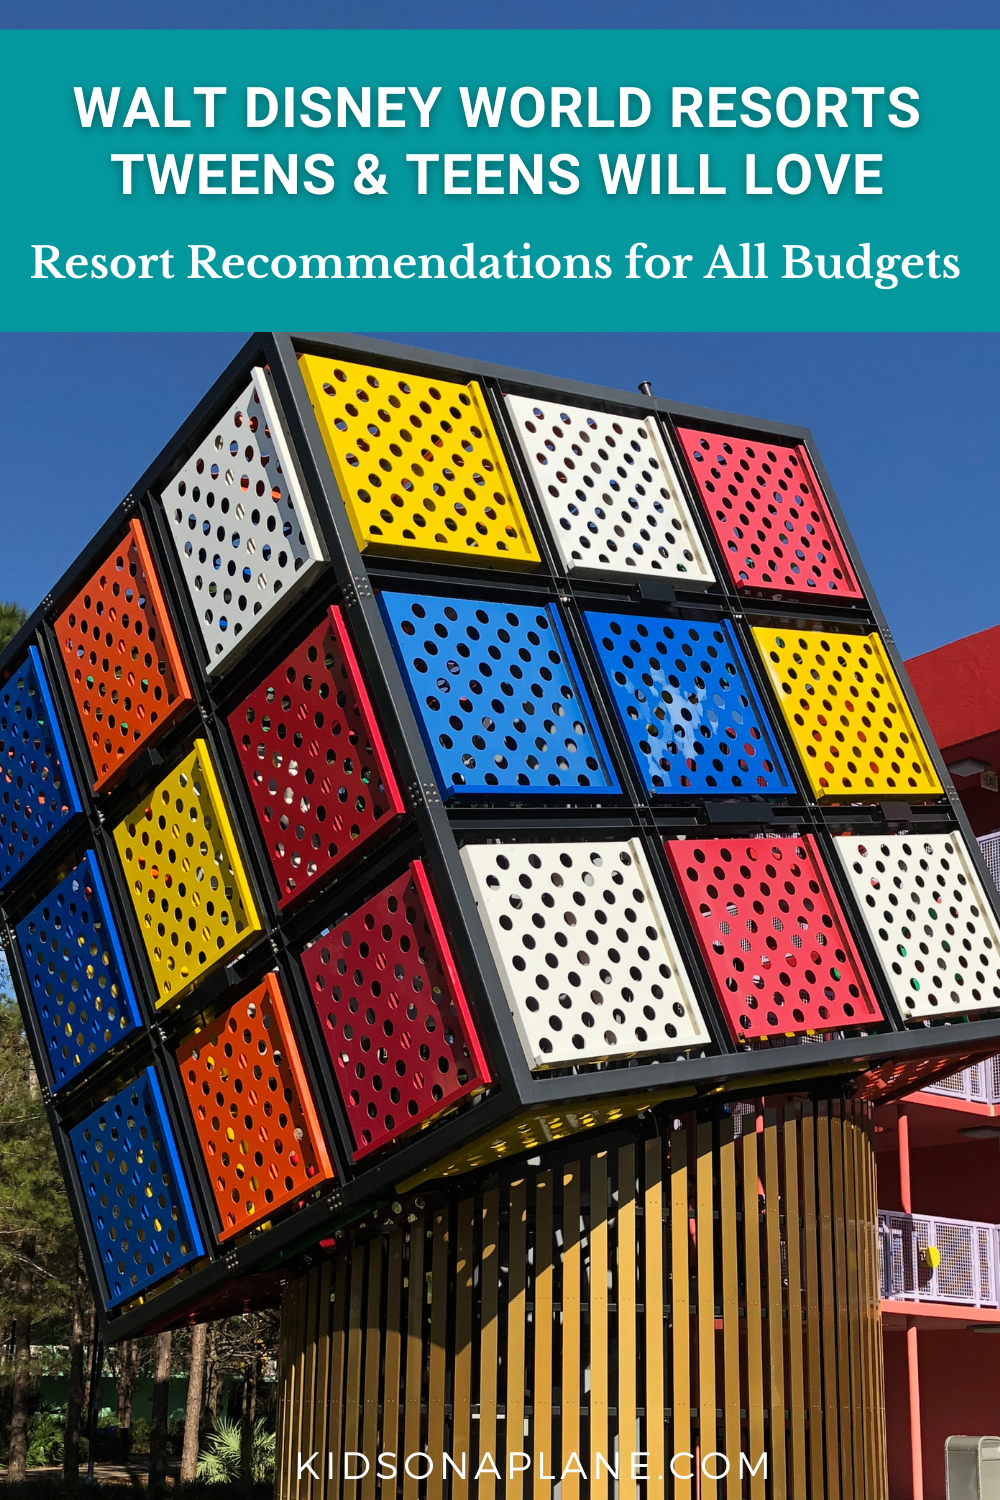 Best Walt Disney World Resorts for Tweens and Teens - Hotel Recommendations for All Budgets